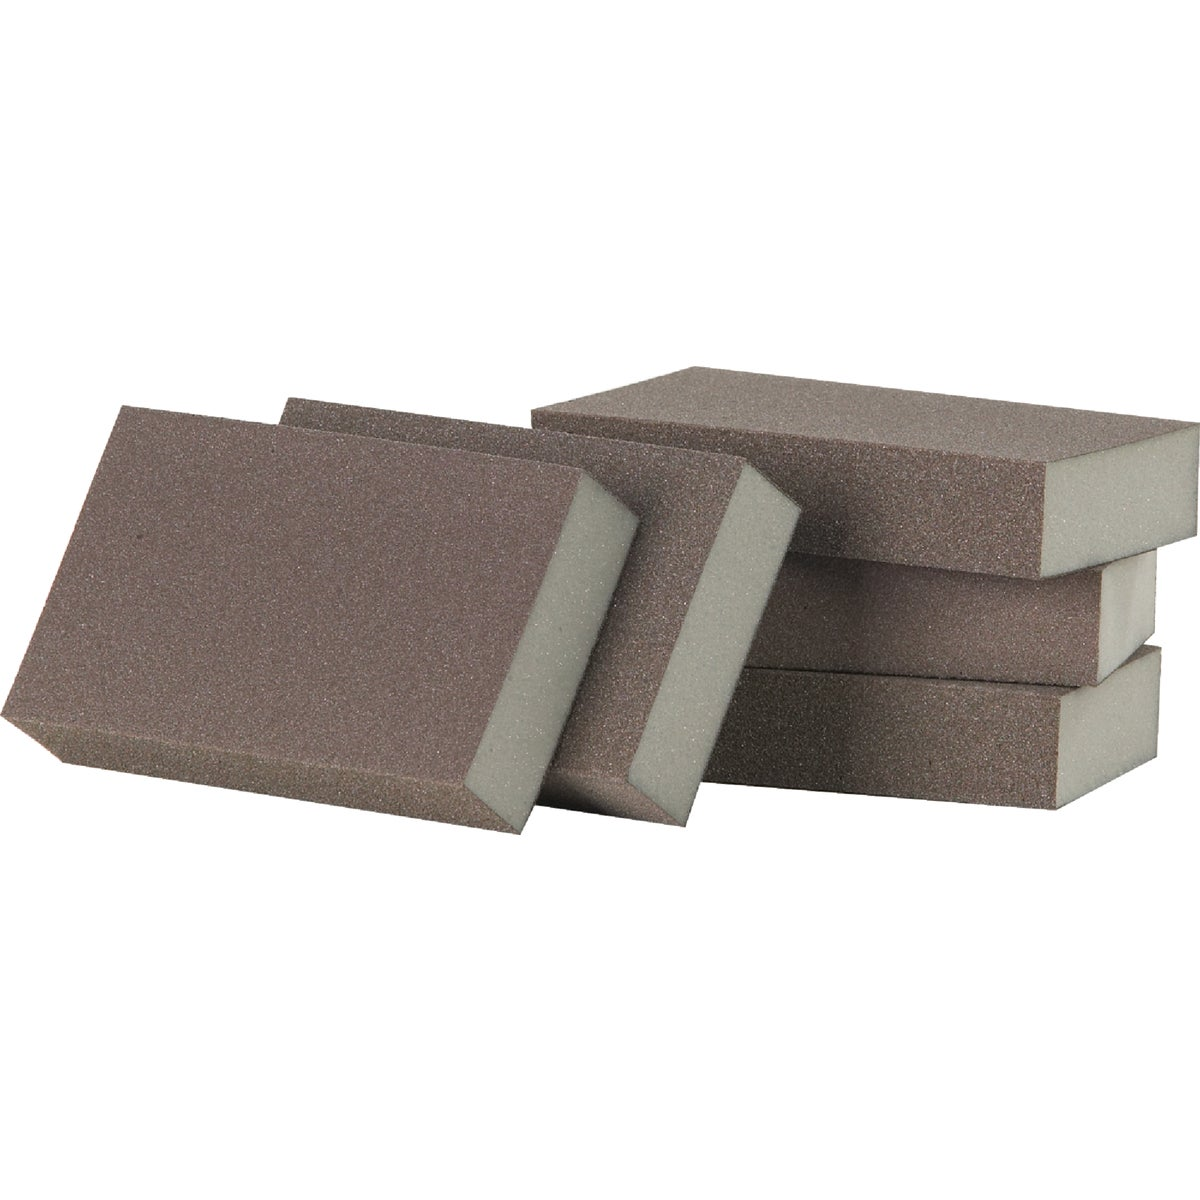 80/120 SANDING SPONGE - 380202 by Ali Industries Inc